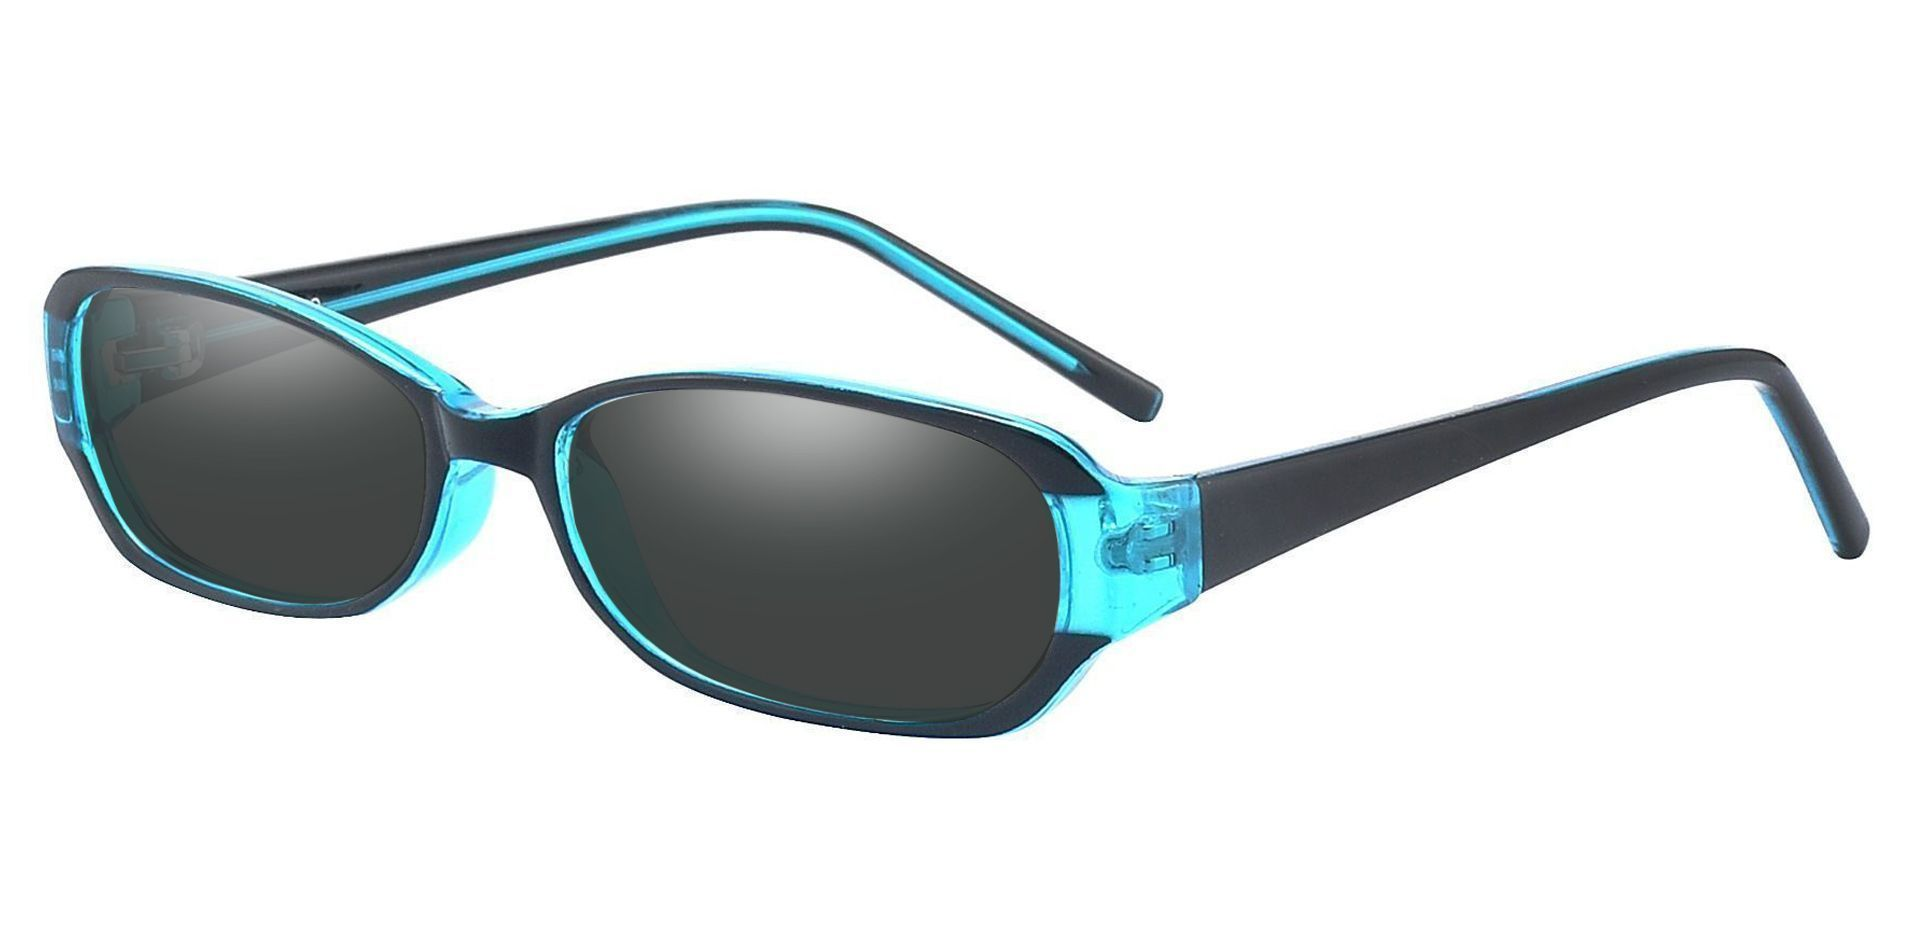 Nairobi Oval Single Vision Sunglasses -  Blue Frame With Gray Lenses